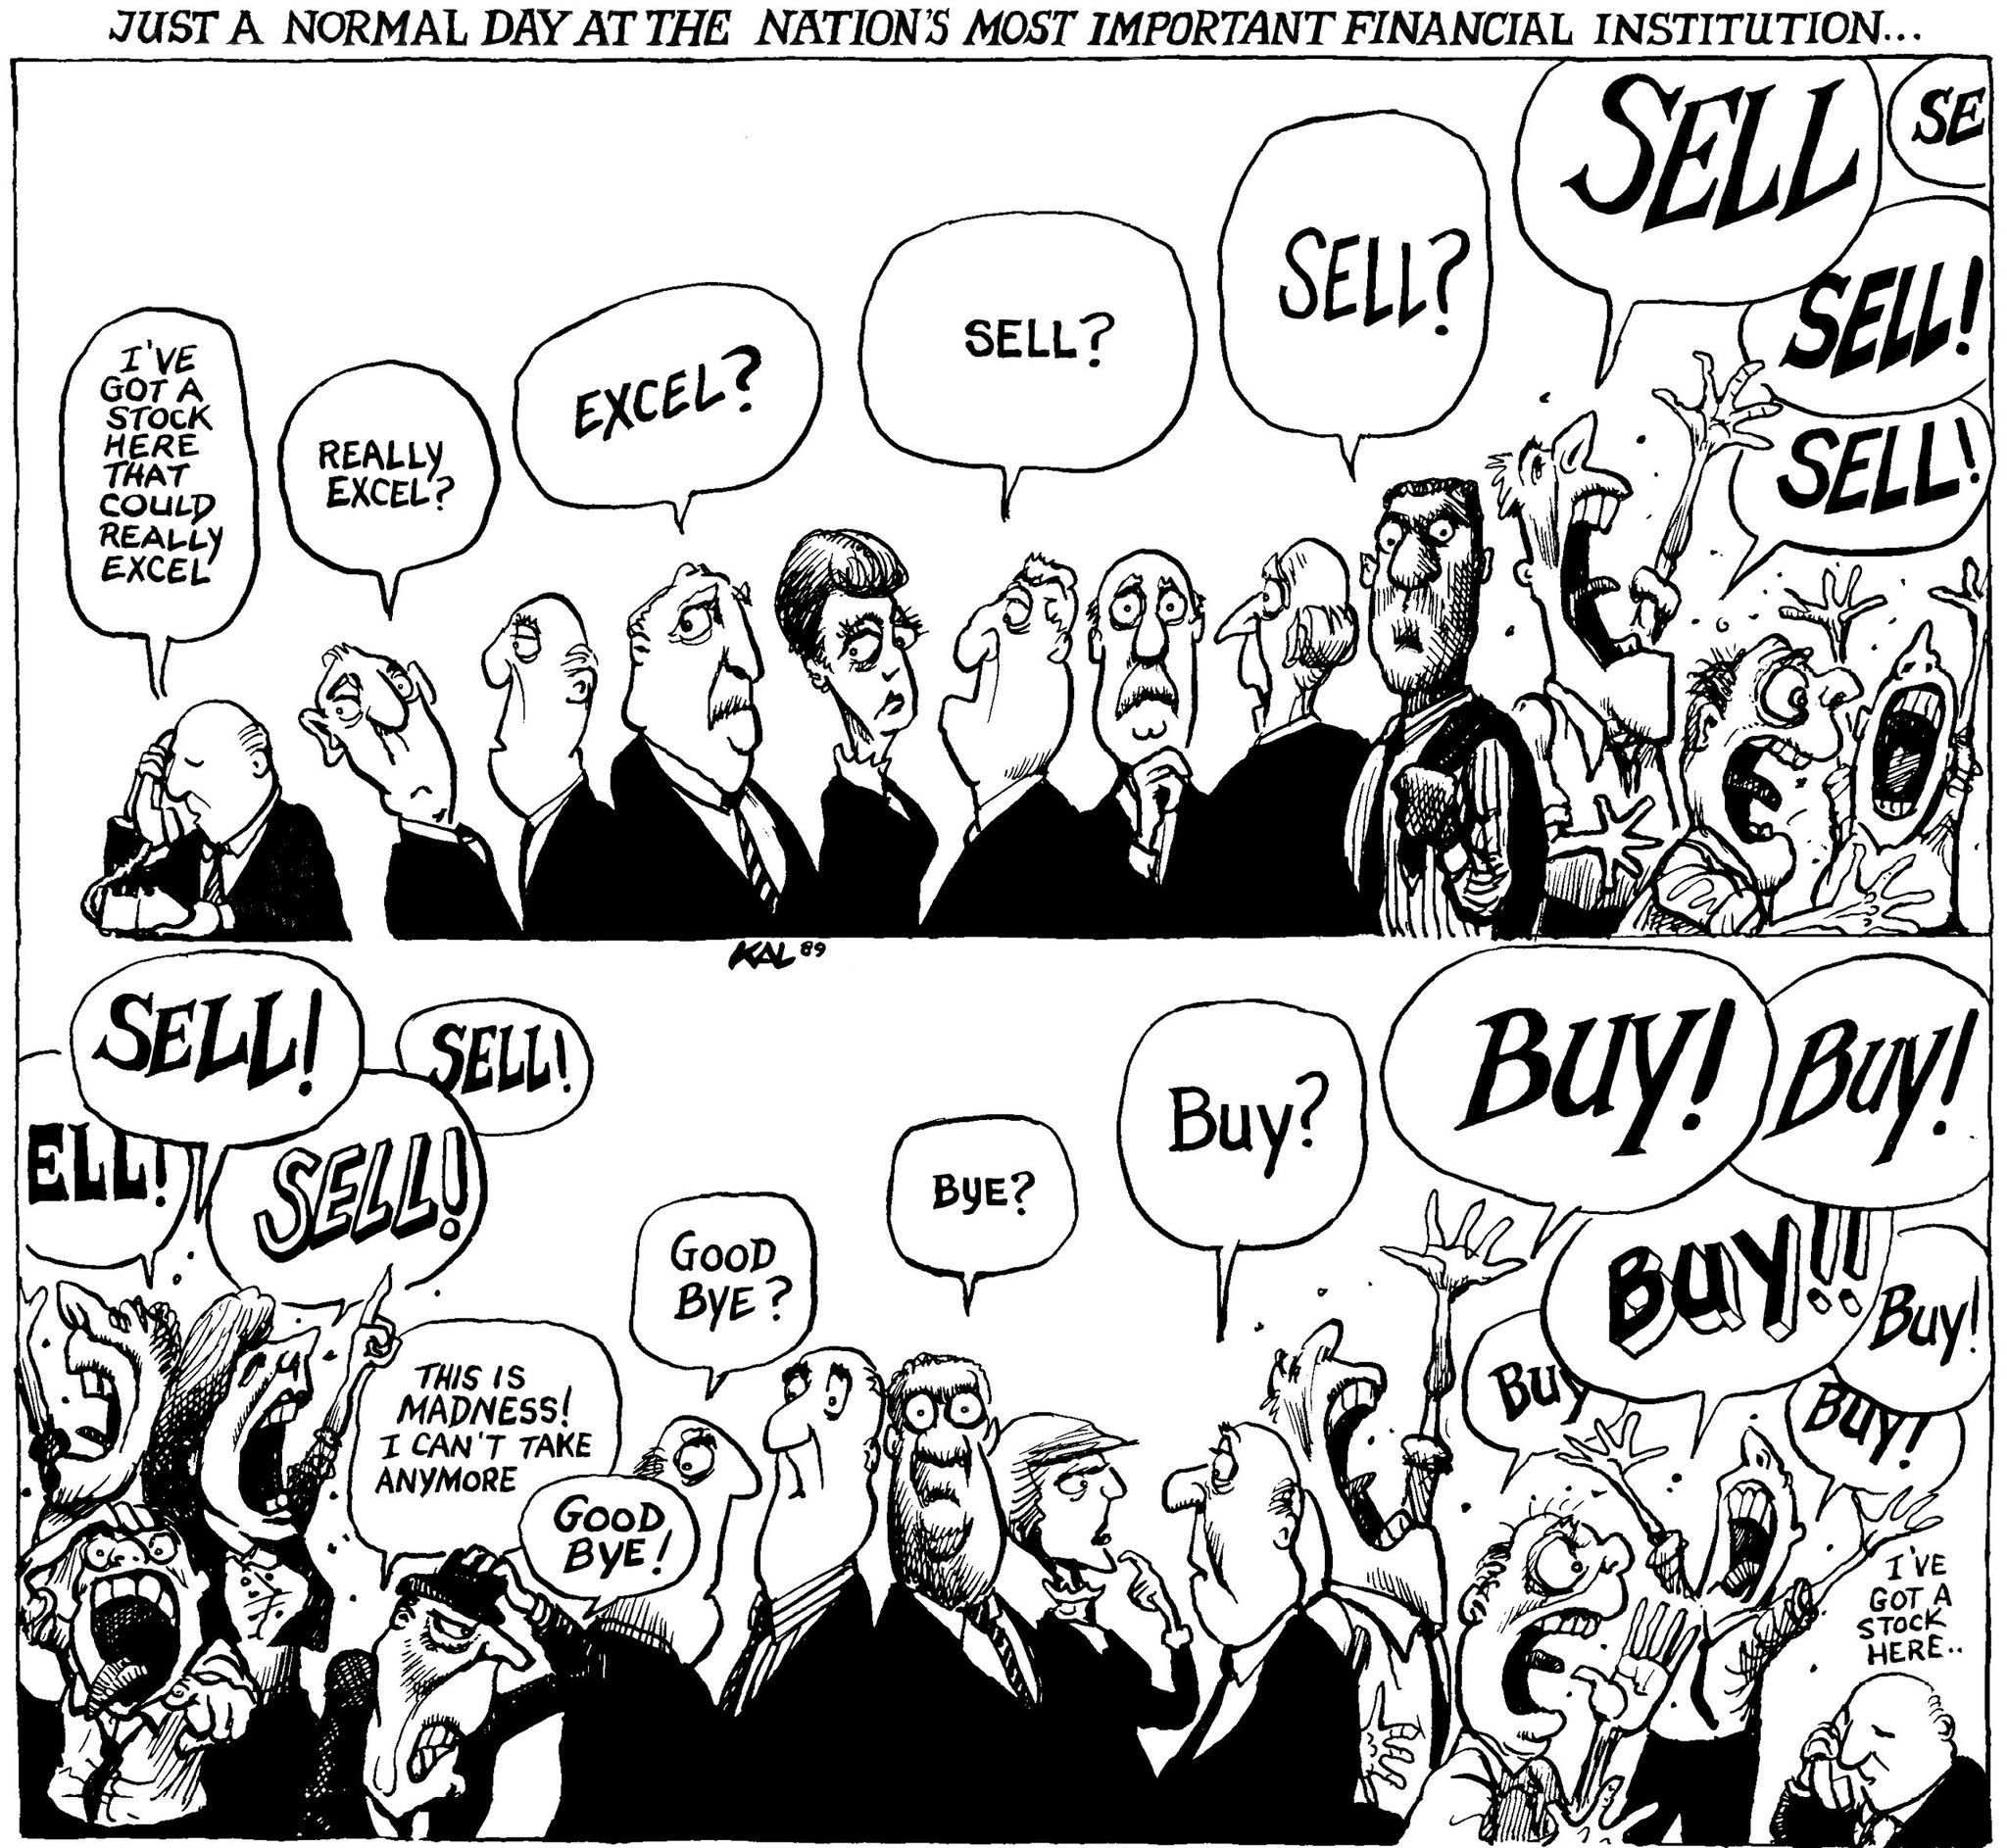 Buy Buy Sell Sell Signed Kal Print Stock Trading Ways To Get Money Financial Institutions